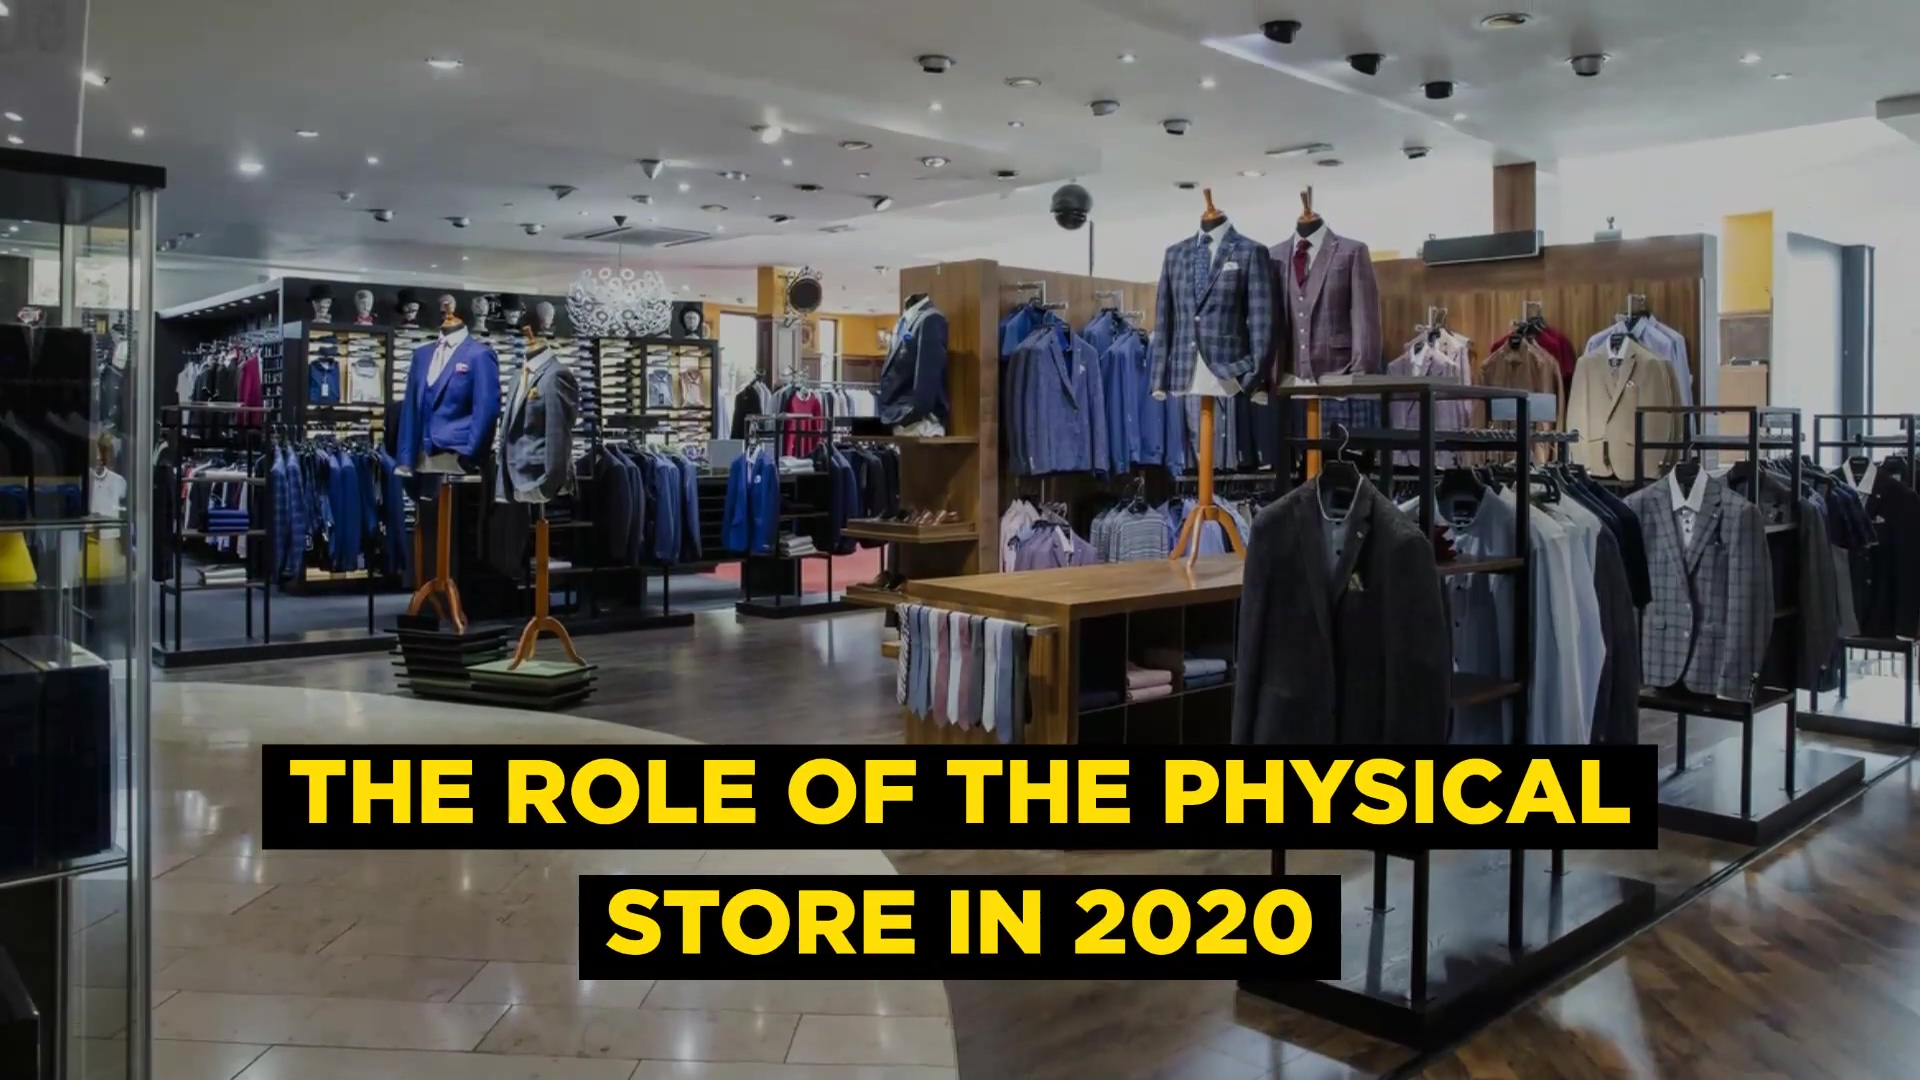 The Role of the Physical Store in 2020